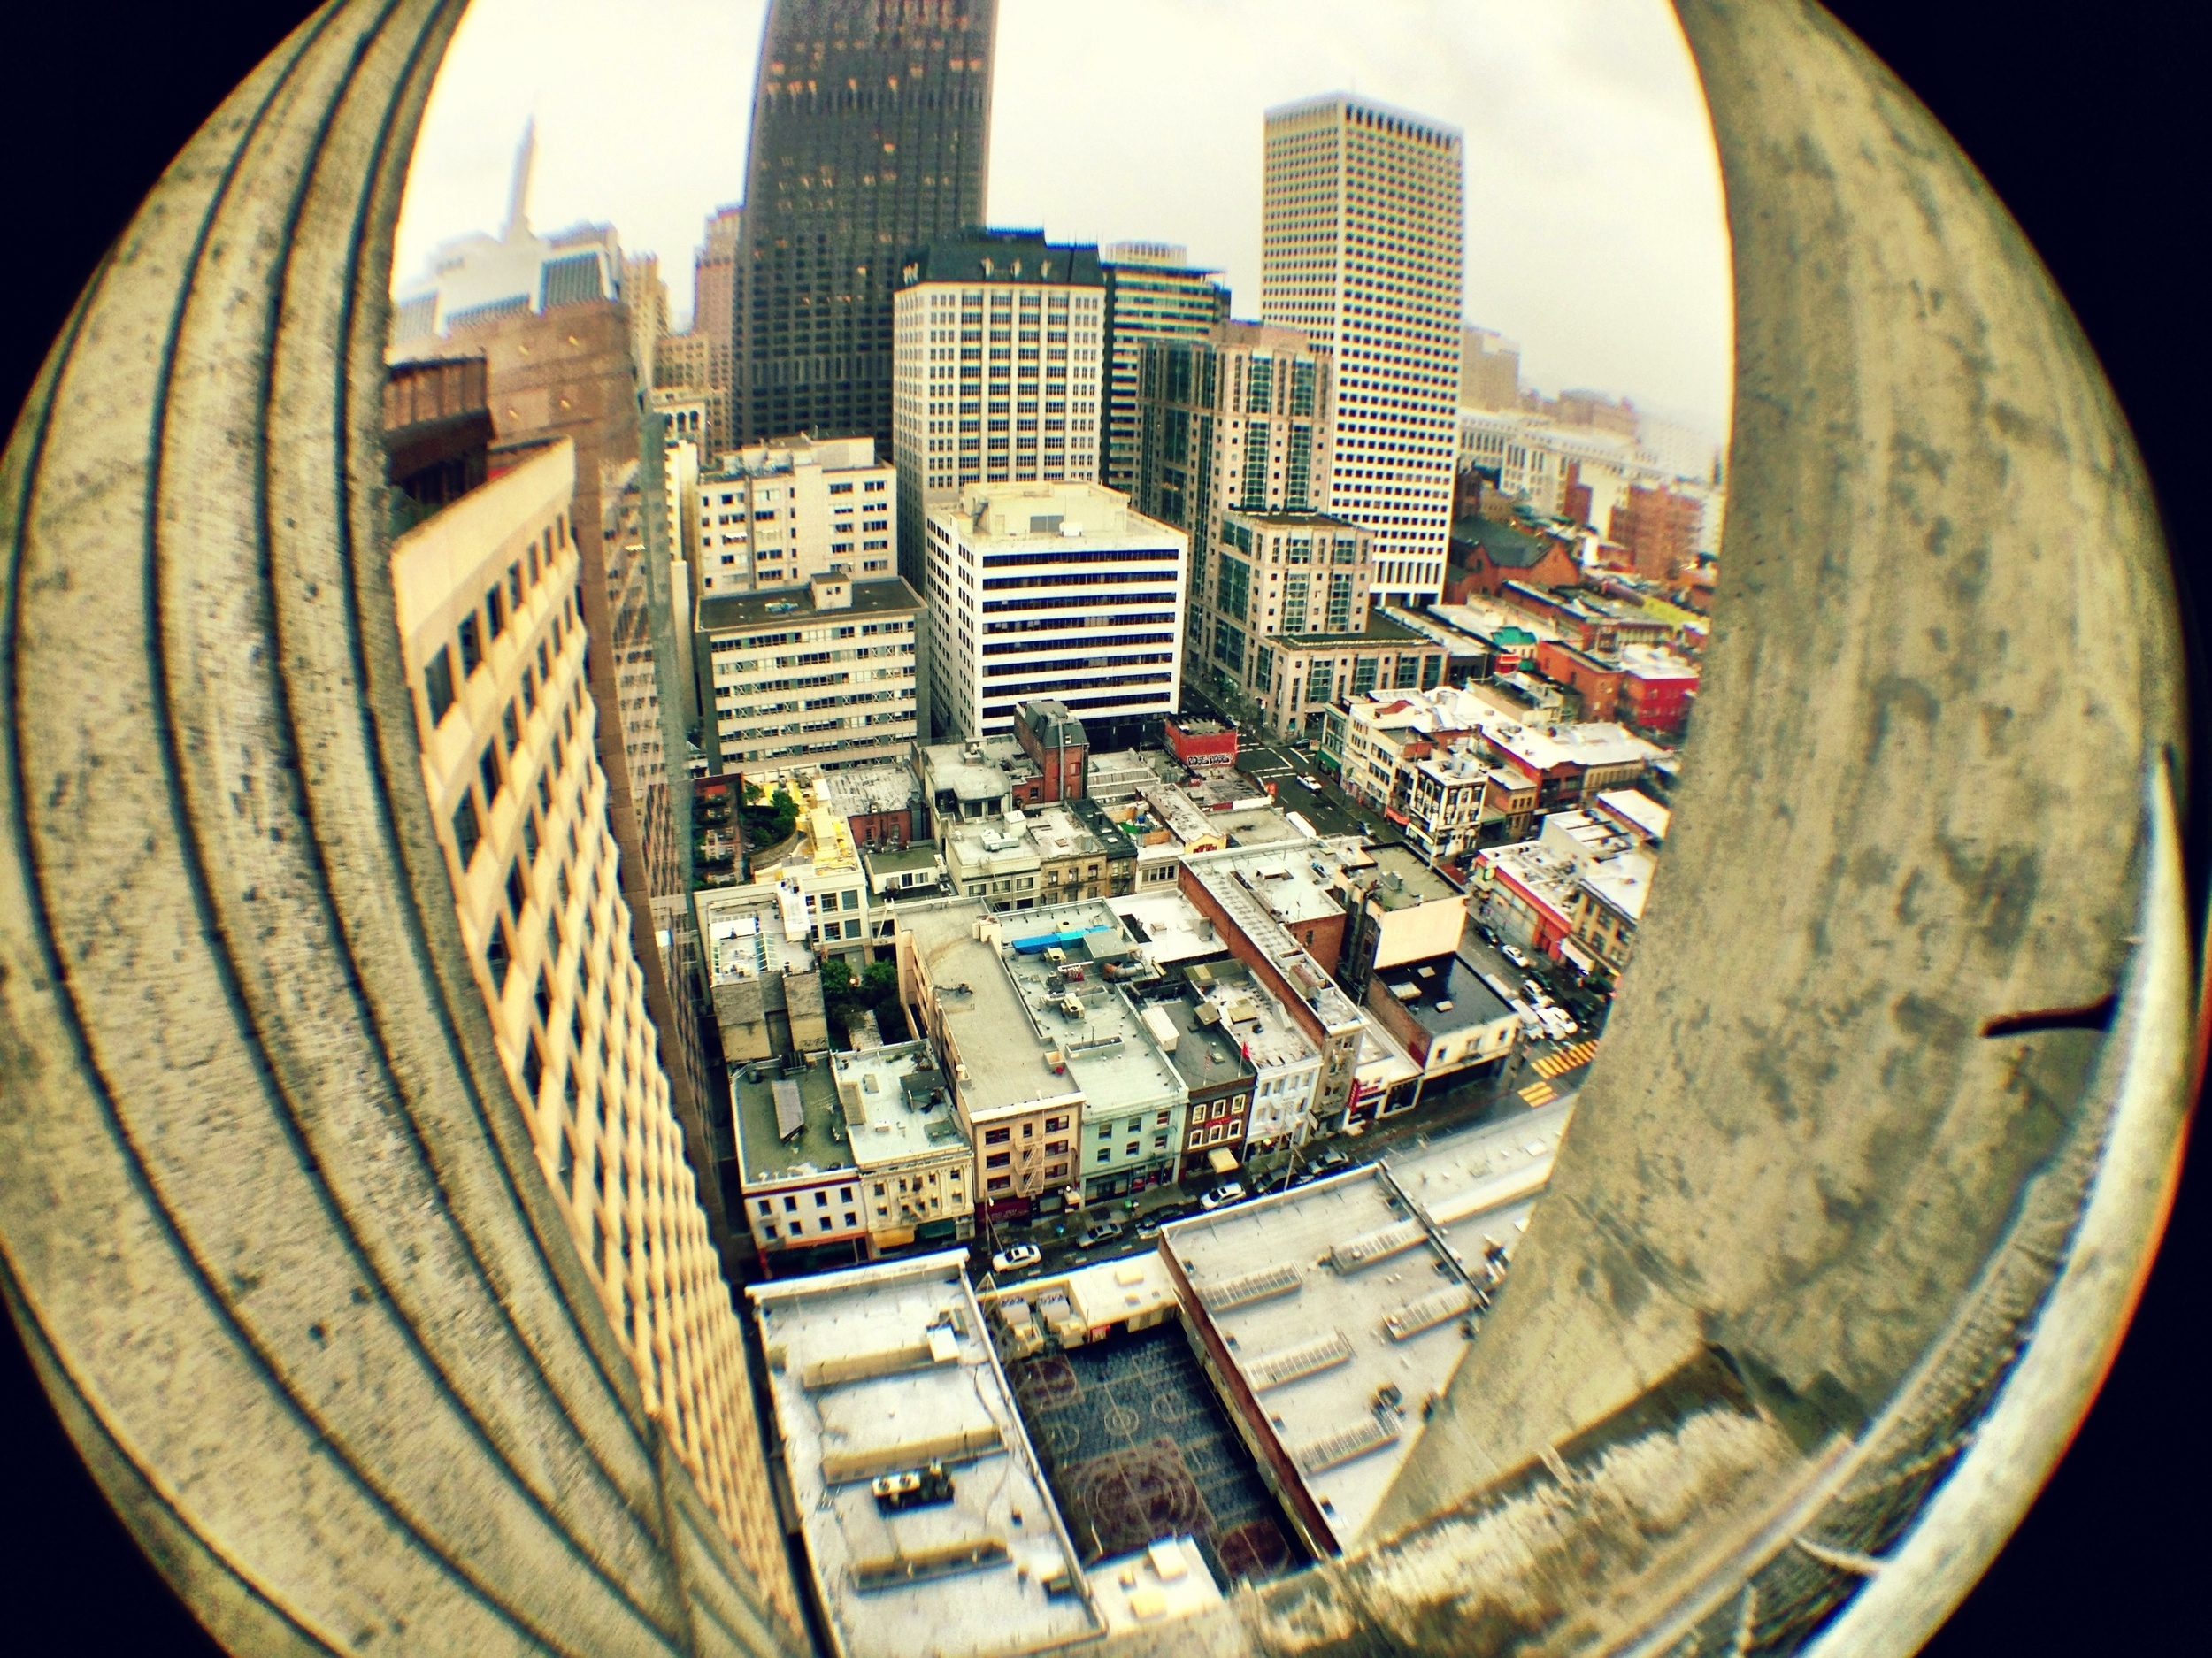 Fish eye lens clip on iPhone